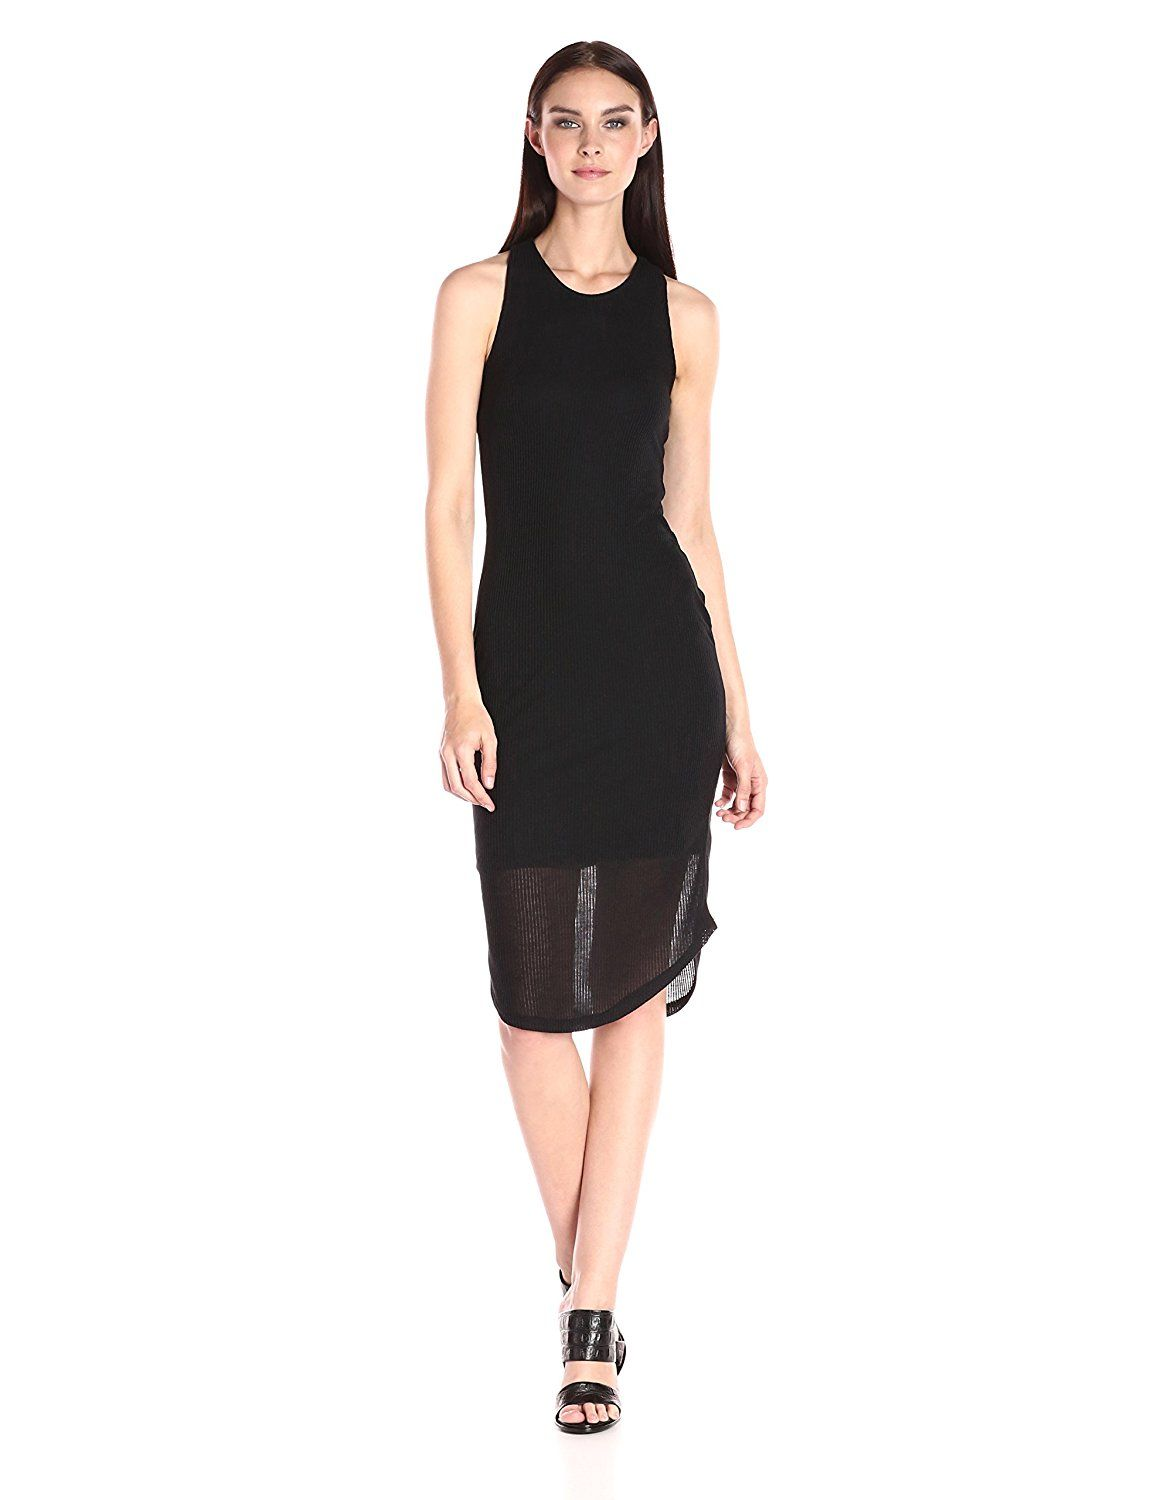 d905781134 RD Style Women s Ribbed Racerback Tank Dress   Check this awesome image   Women s  dresses